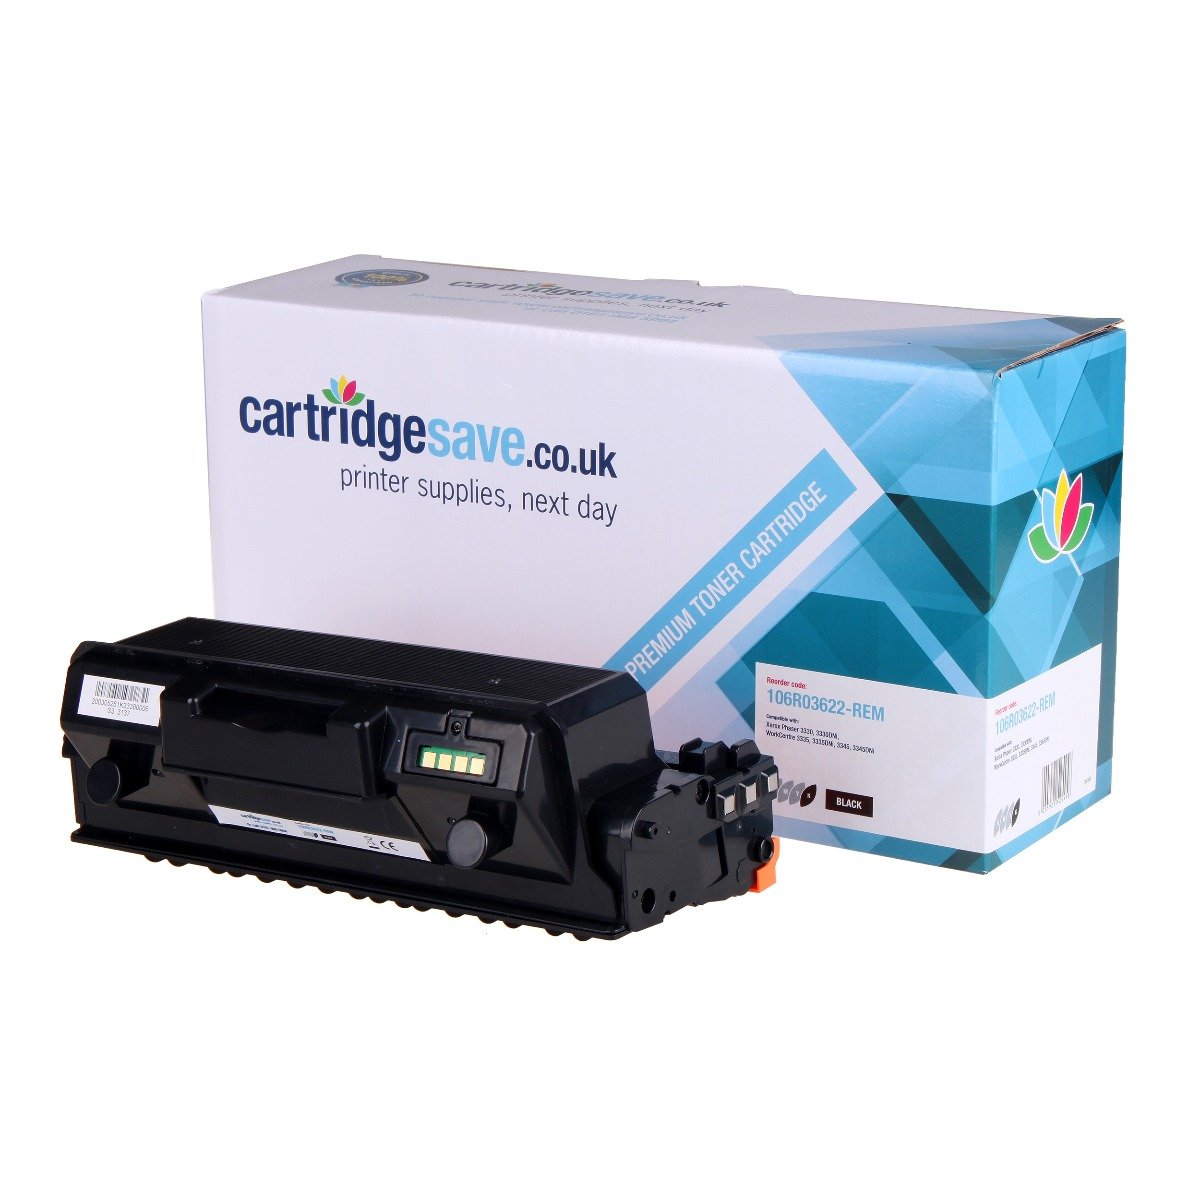 Compatible Black High Capacity 106R03622 Xerox Toner Cartridge - (Replaces Xerox 106R03622)